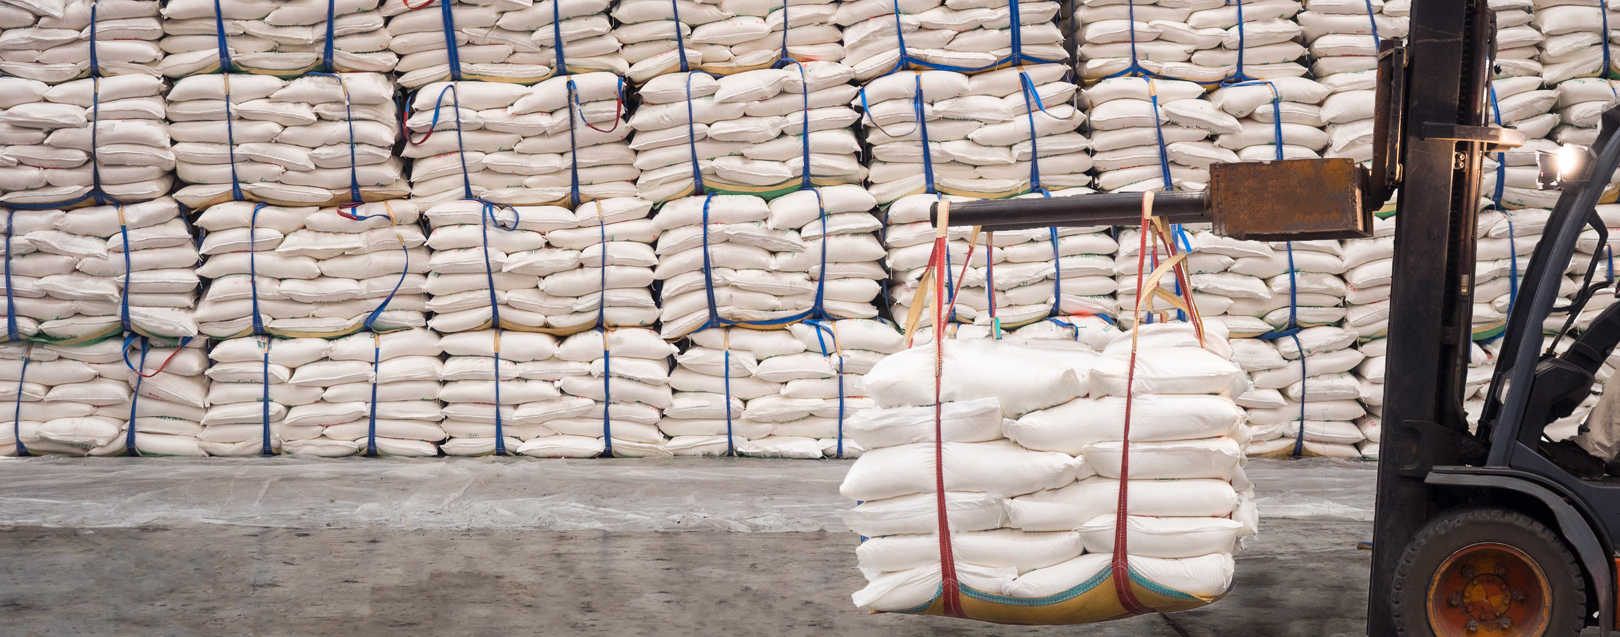 Govt allows export of 2 MT sugar till Sept 2018 to clear surplus